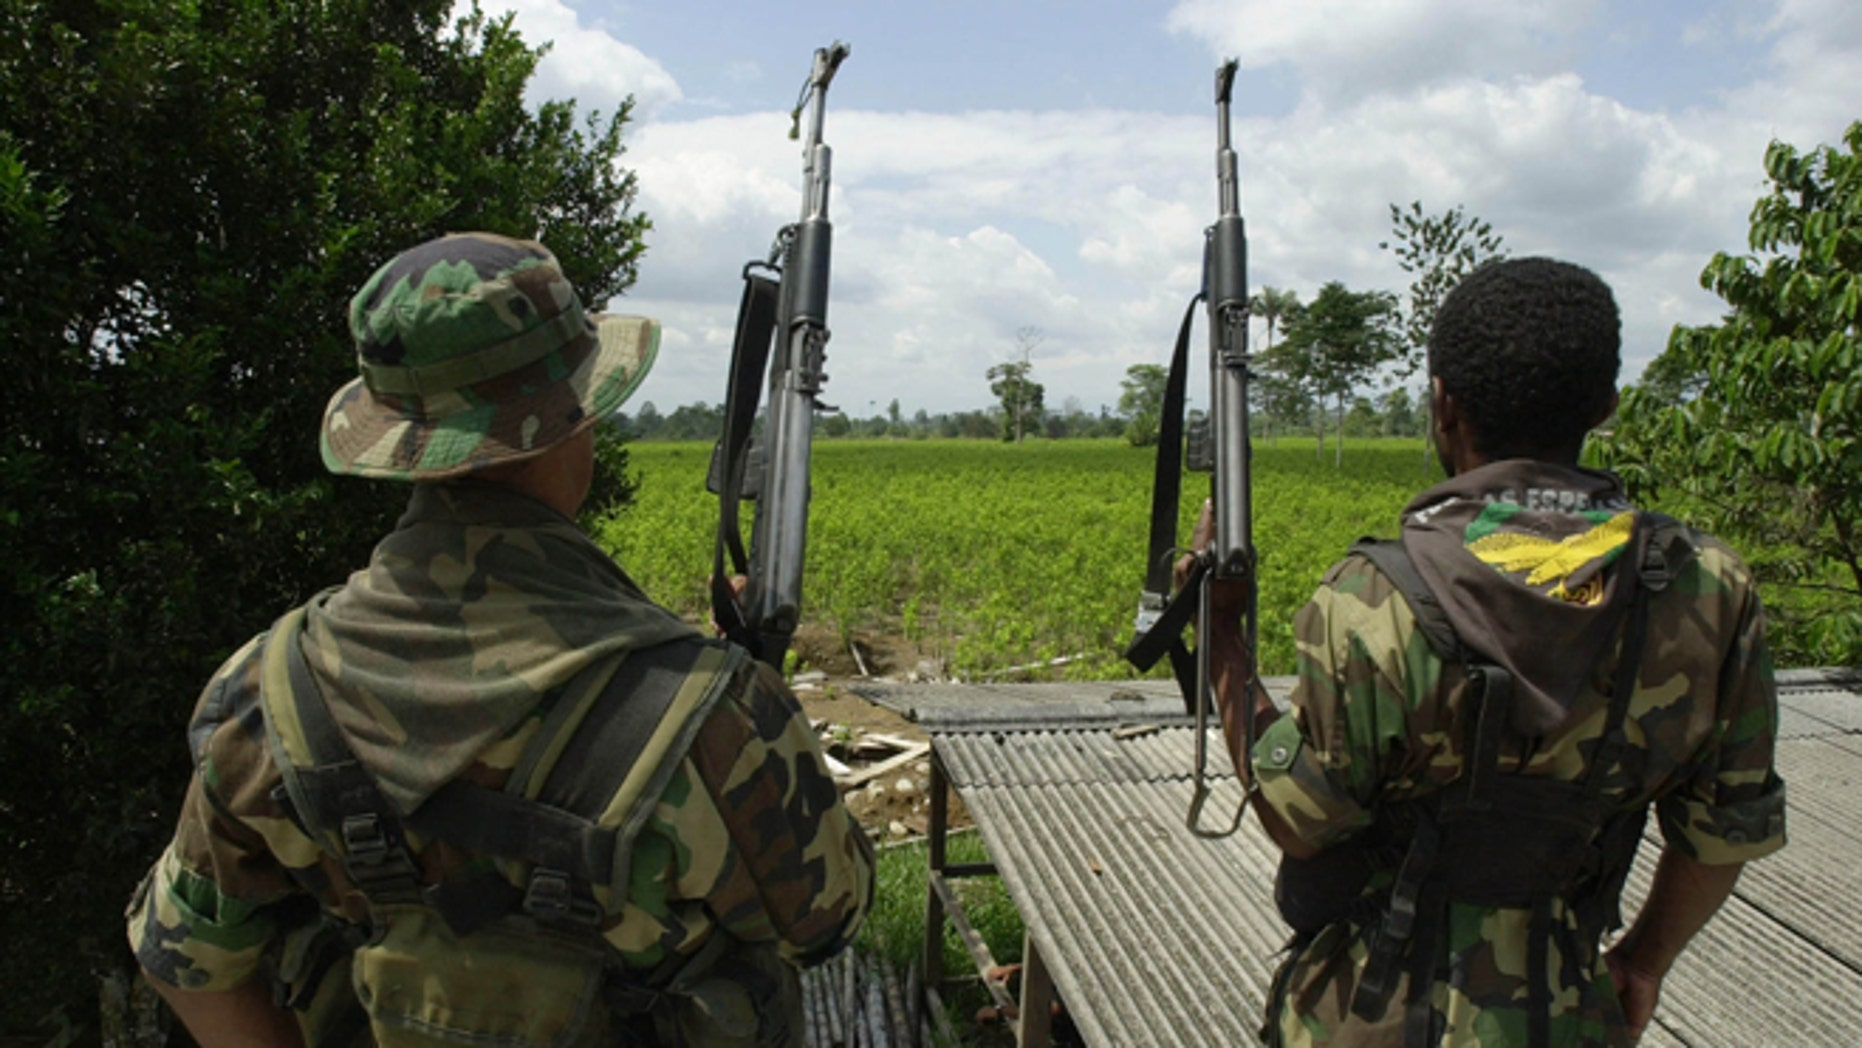 384090 01: ***EXCLUSIVE*** Two members of the AUC, the United Self Defense Force of Colombia, the extreme right paramilitary group, patrol a coca leaf plantation where a manual eradication of the coca leaves has gone into effect January 8, 2001 in the province of Putumayo, Colombia. Since the U.S. aid plan for Colombia began last December 15, the AUC are manually destroying coca leaves with machetes in and around the vast areas of coca leaf plantations south of Putumayo. The Colombian leftist guerrilla group, the FARC, is attempting to take control of areas that were under their control, not more than a year ago. (Photo by Piero Pomponi/Newsmakers)